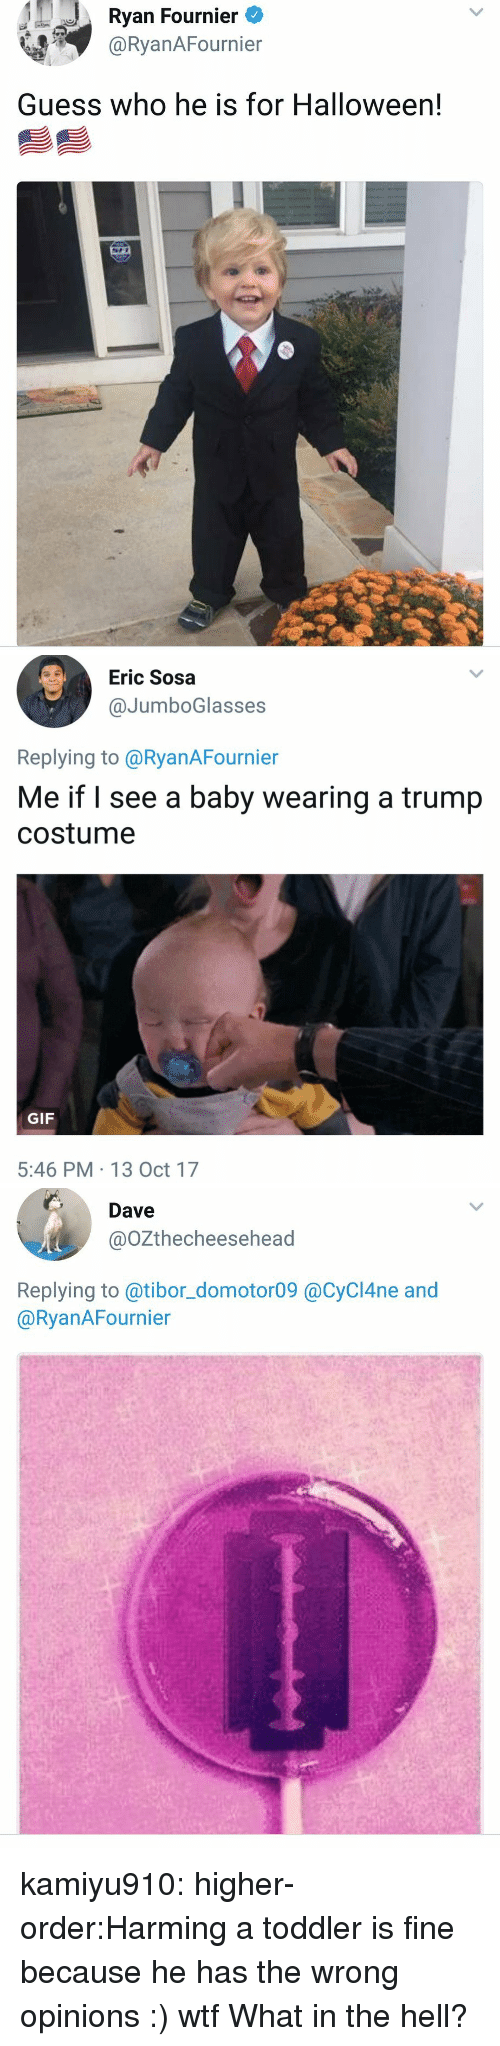 Gif, Halloween, and Tumblr: Ryan Fournier  @RyanAFournier  Guess who he is for Halloween!   Eric Sosa  @JumboGlasses  Replying to @RyanAFournier  Me if l see a baby wearing a trump  costume  GIF  5:46 PM 13 Oct 17   Dave  @OZthecheesehead  Replying to @tibor_domotor09 @CyCI4ne and  @RyanAFournier kamiyu910:  higher-order:Harming a toddler is fine because he has the wrong opinions :) wtf  What in the hell?